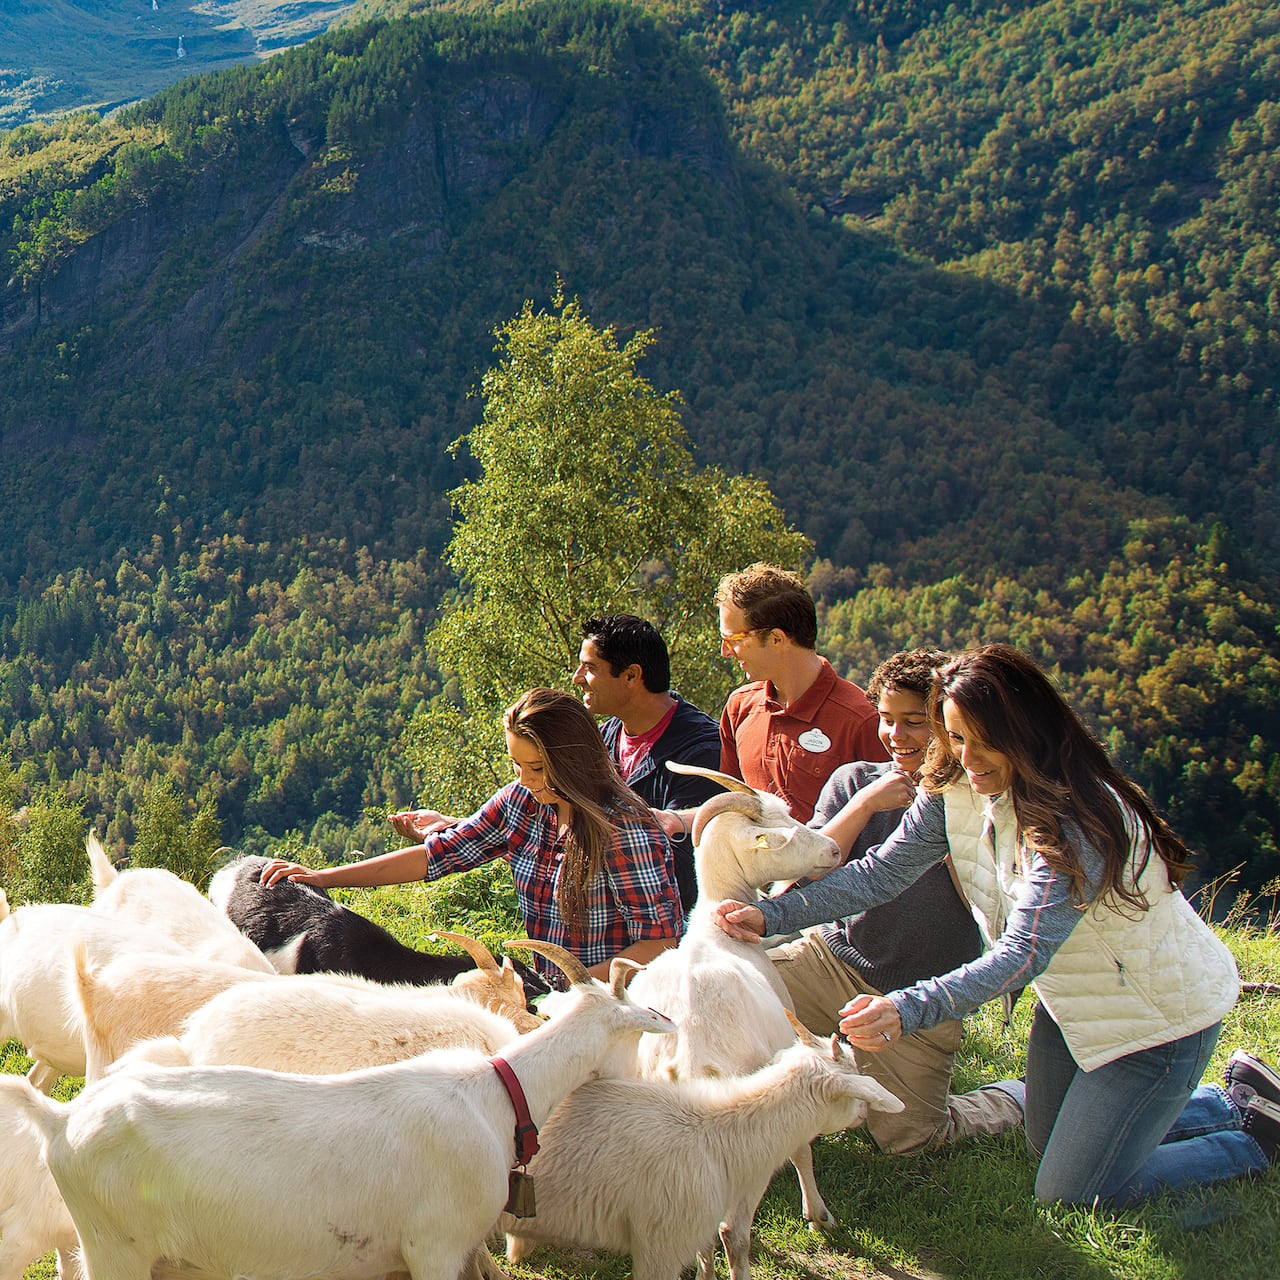 An Adventure Guide, a family of 4 and a herd of goats walking on a mountain path